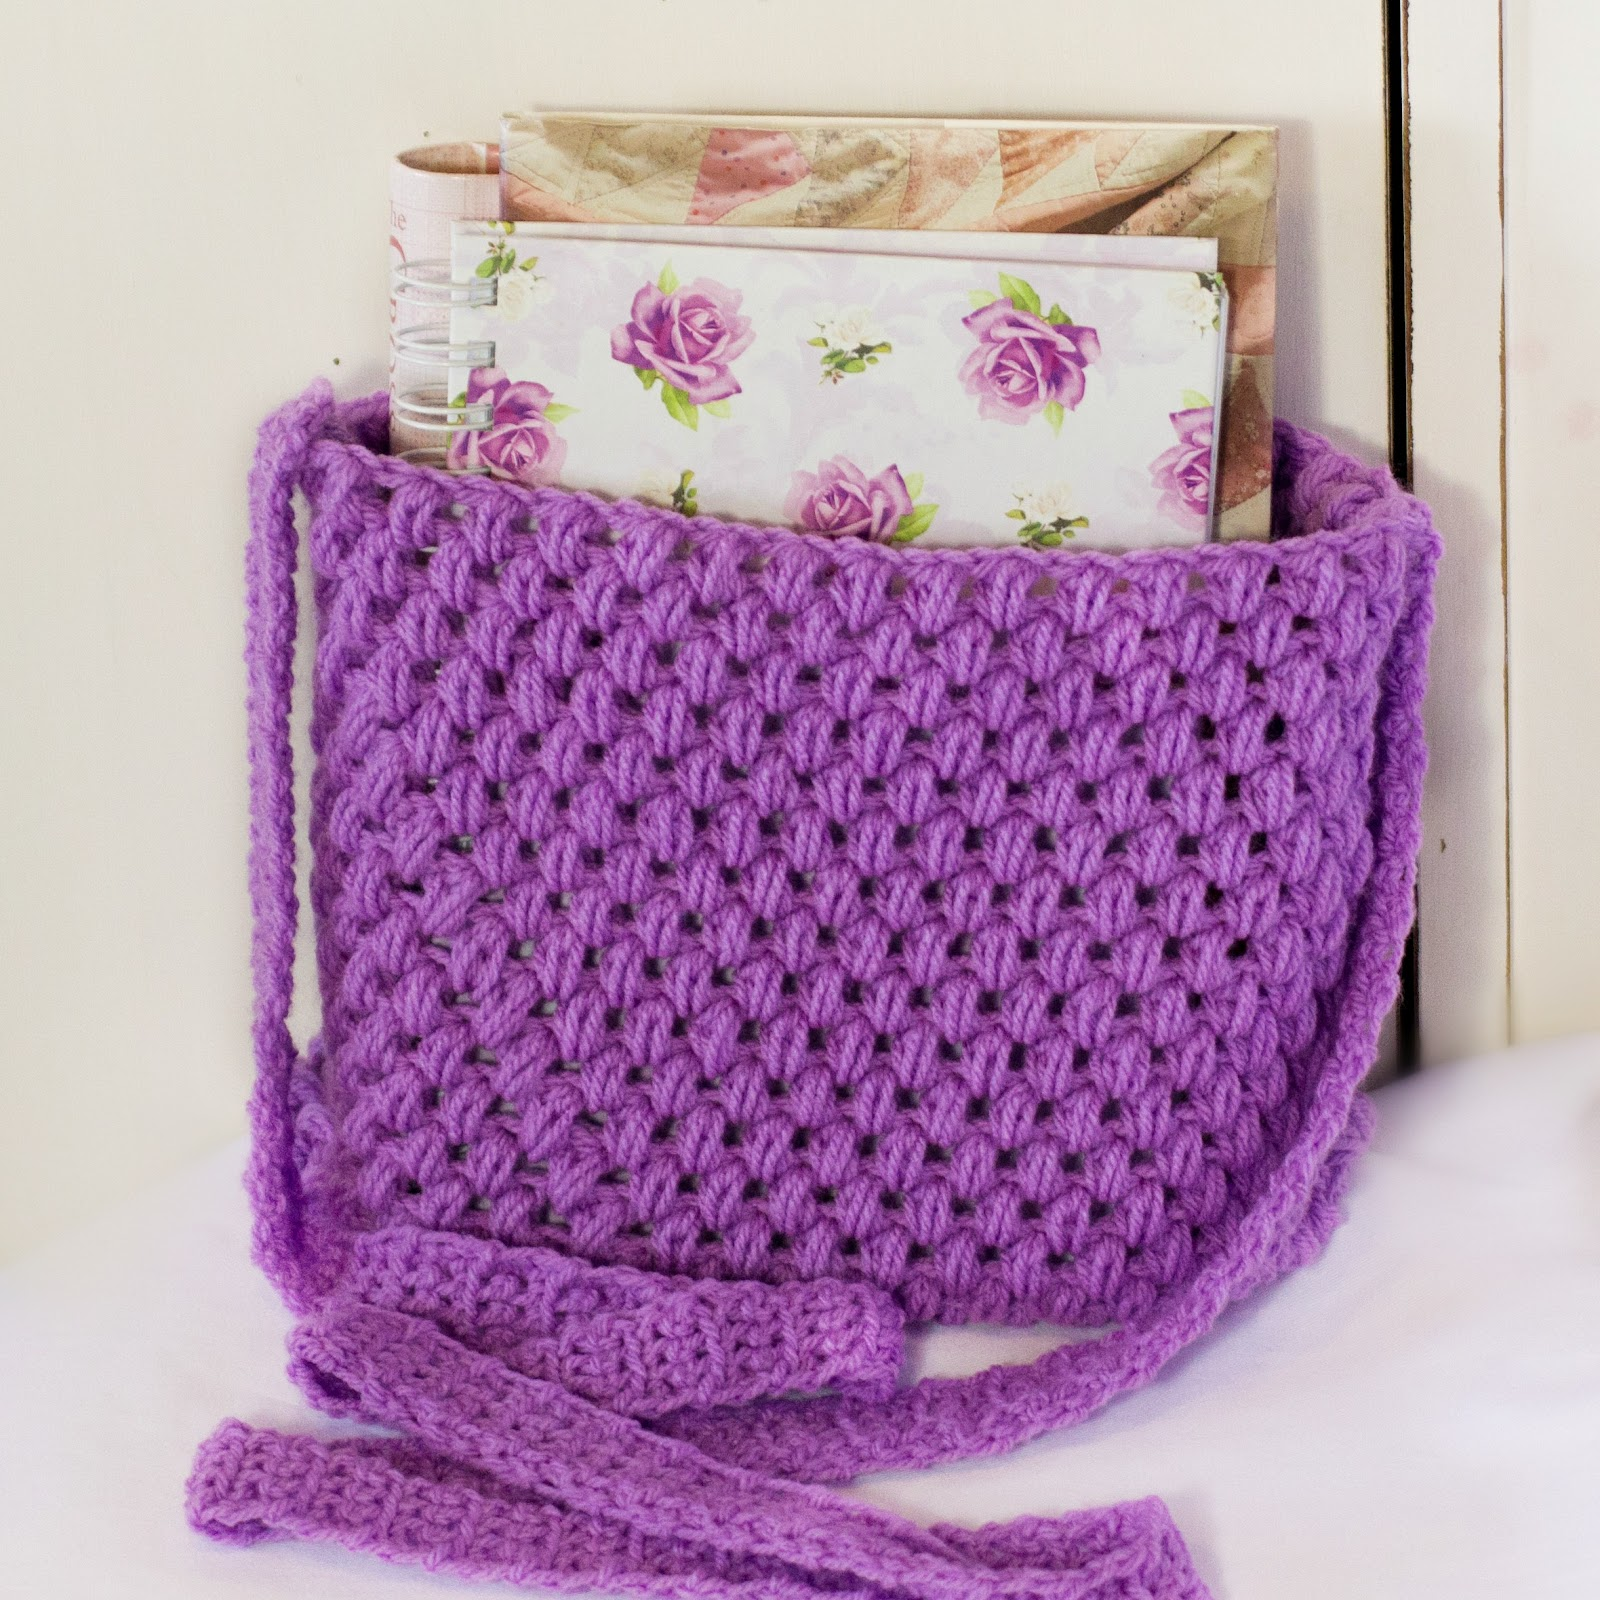 How To Make Crochet Purse : ... Craft, Crochet, Create: Out and About ~ Easy Tote Bag Crochet Pattern